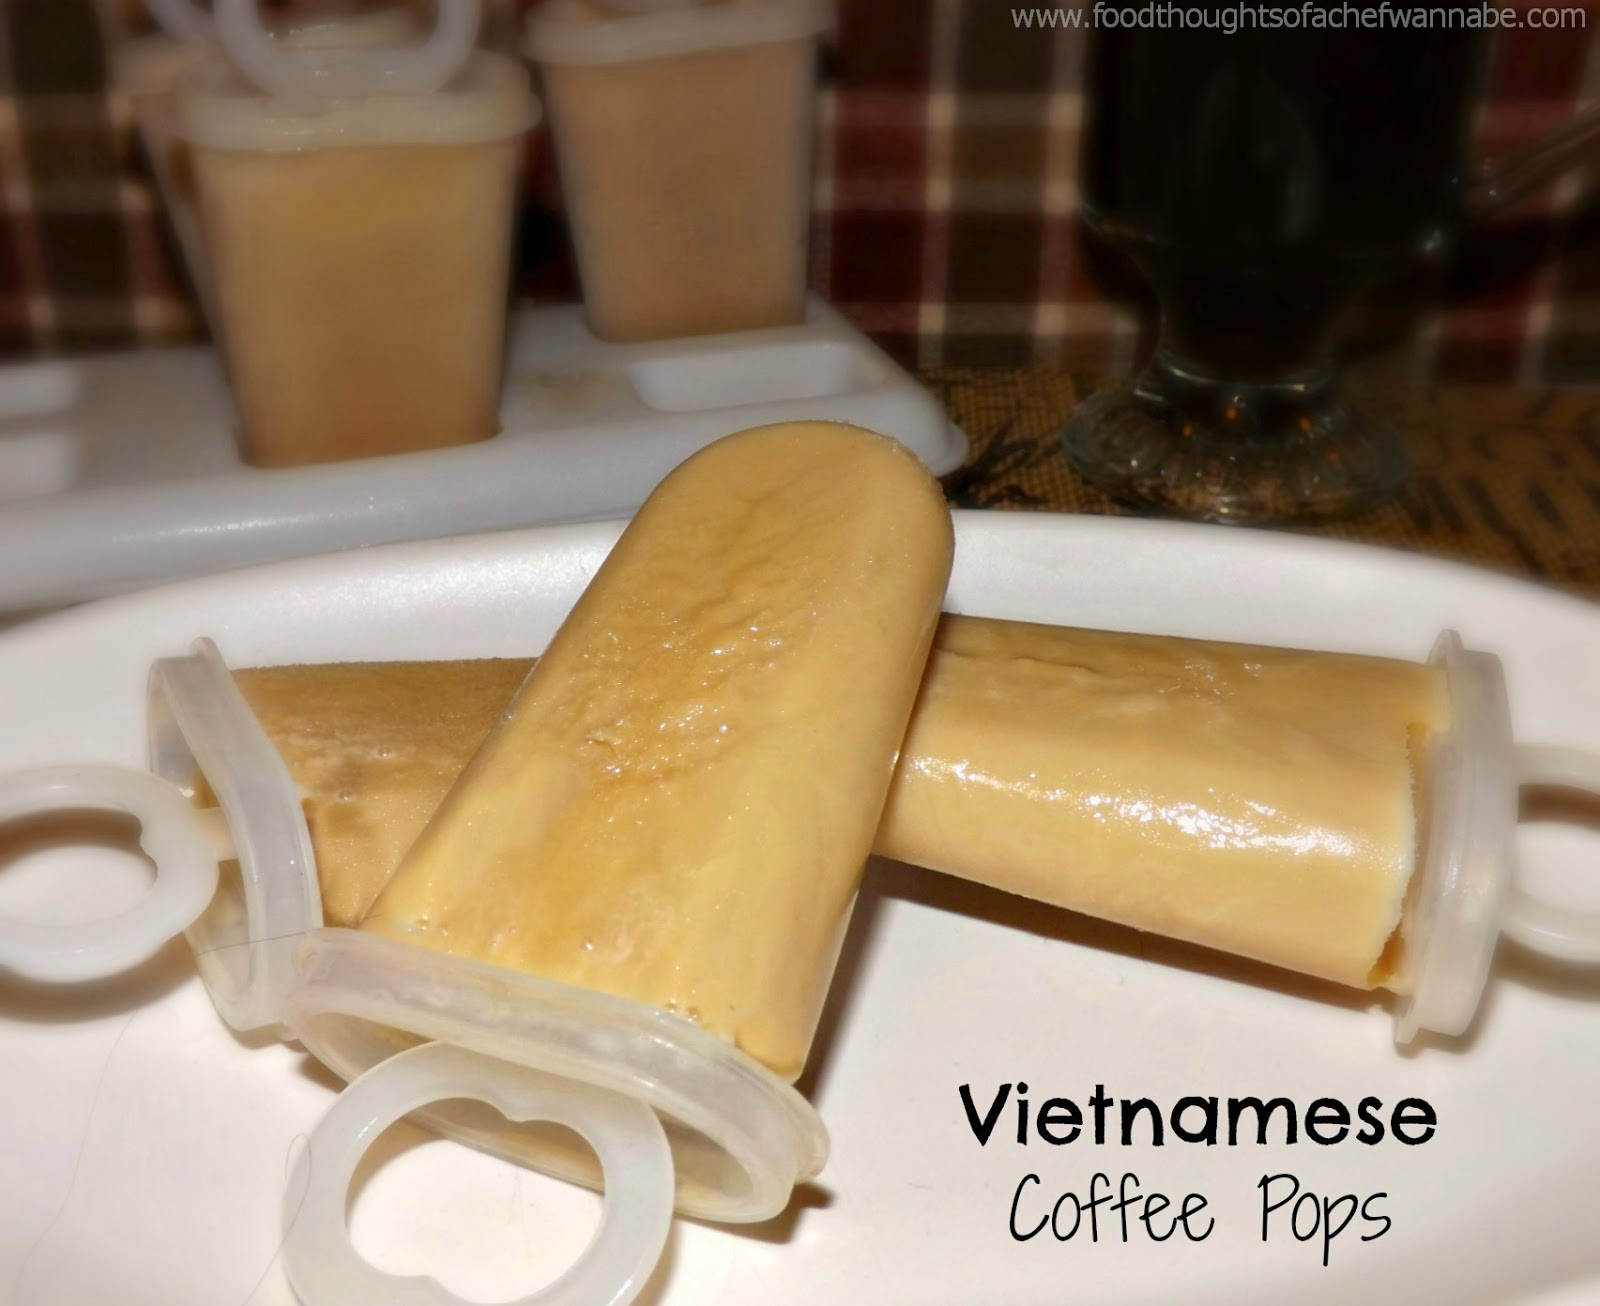 FoodThoughtsOfaChefWannabe: Vietnamese Coffee Pops